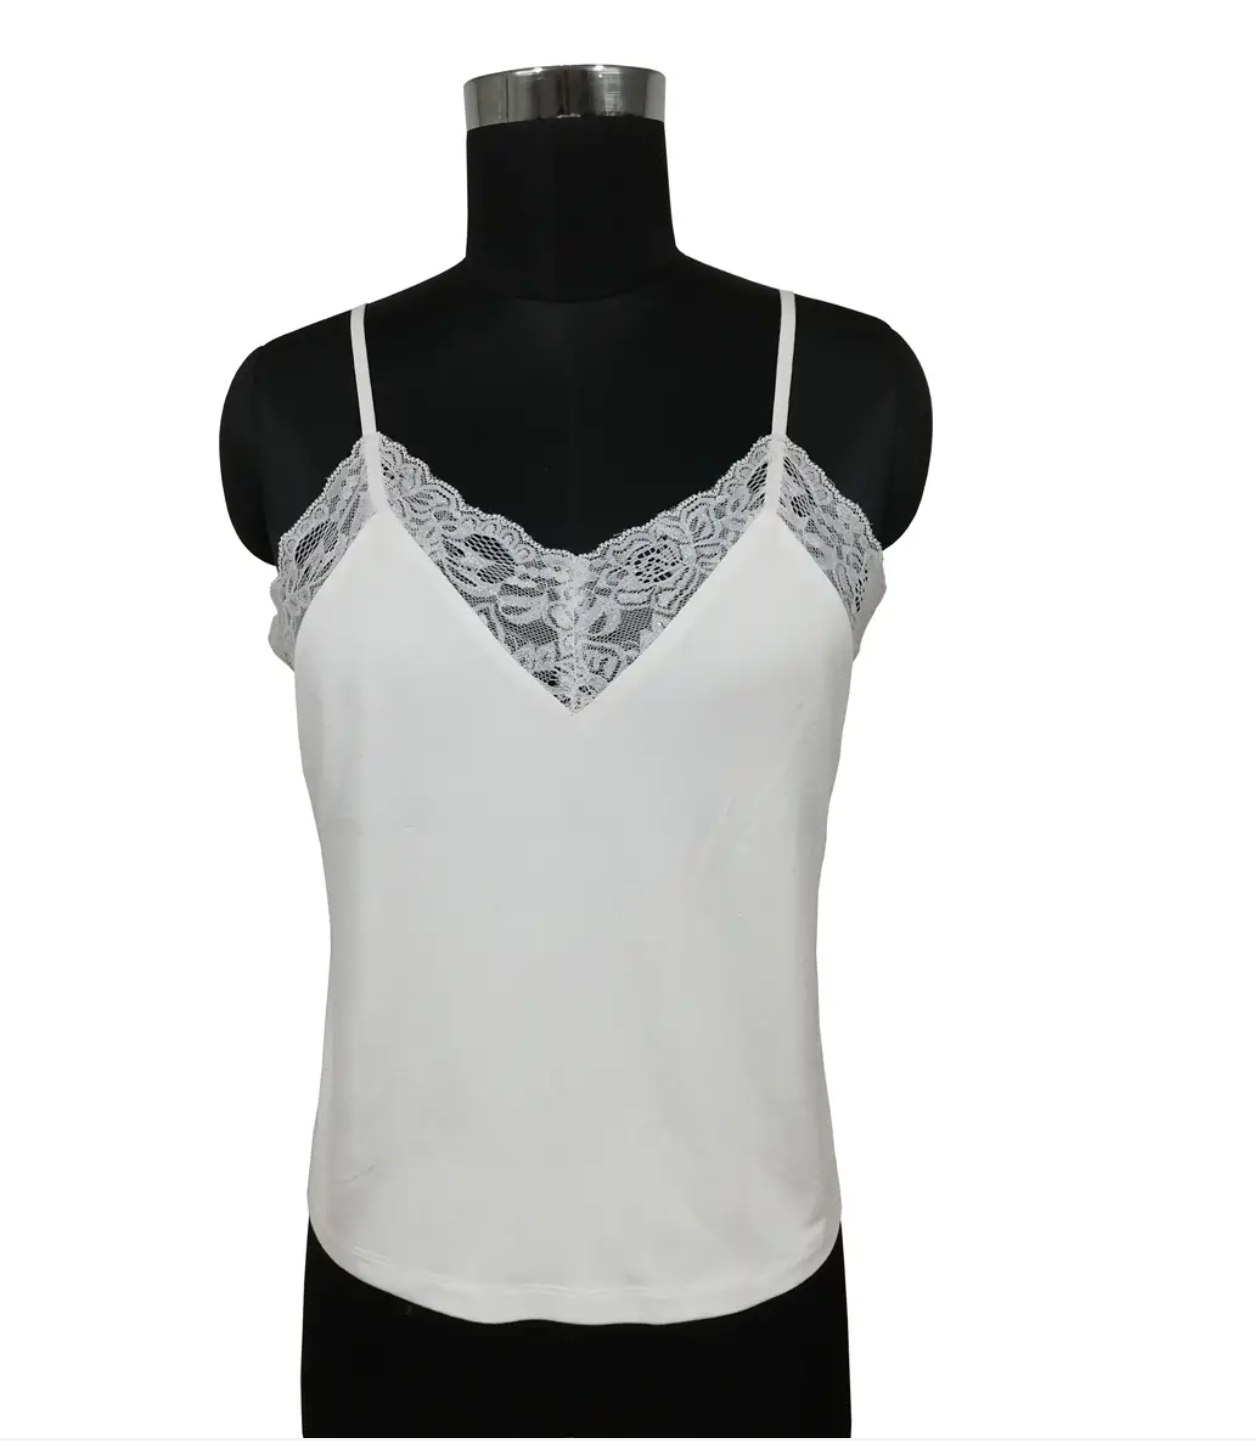 Benares- Lace Tank Top in White